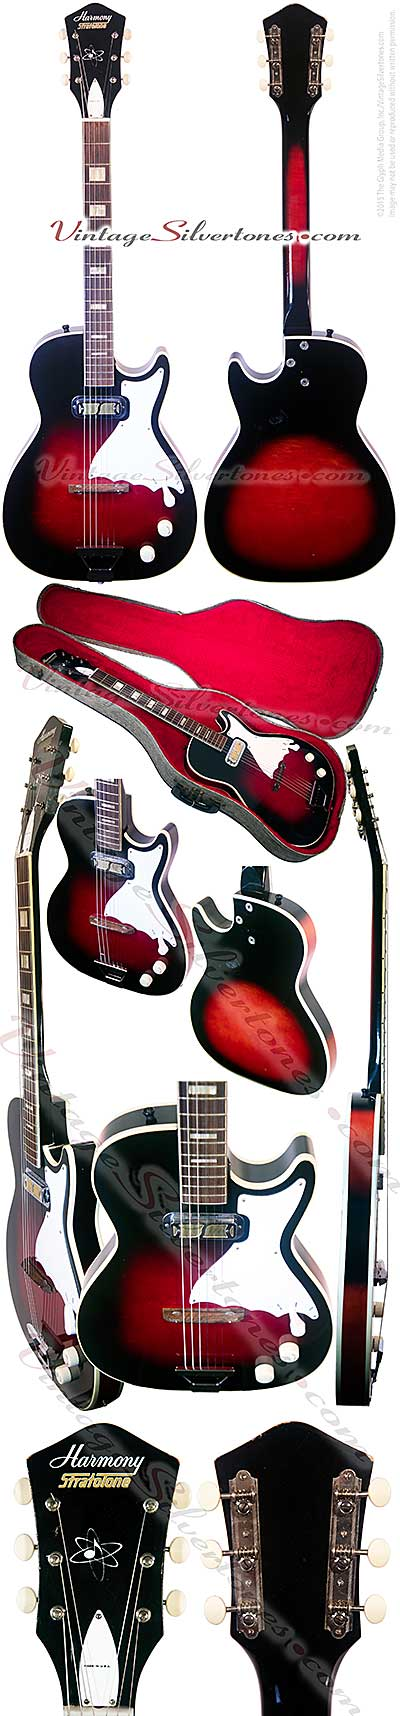 Harmony H47 - Stratotone - one pickup, redburst, hollow body electric guitar made in Chicago IL USA circa 1961